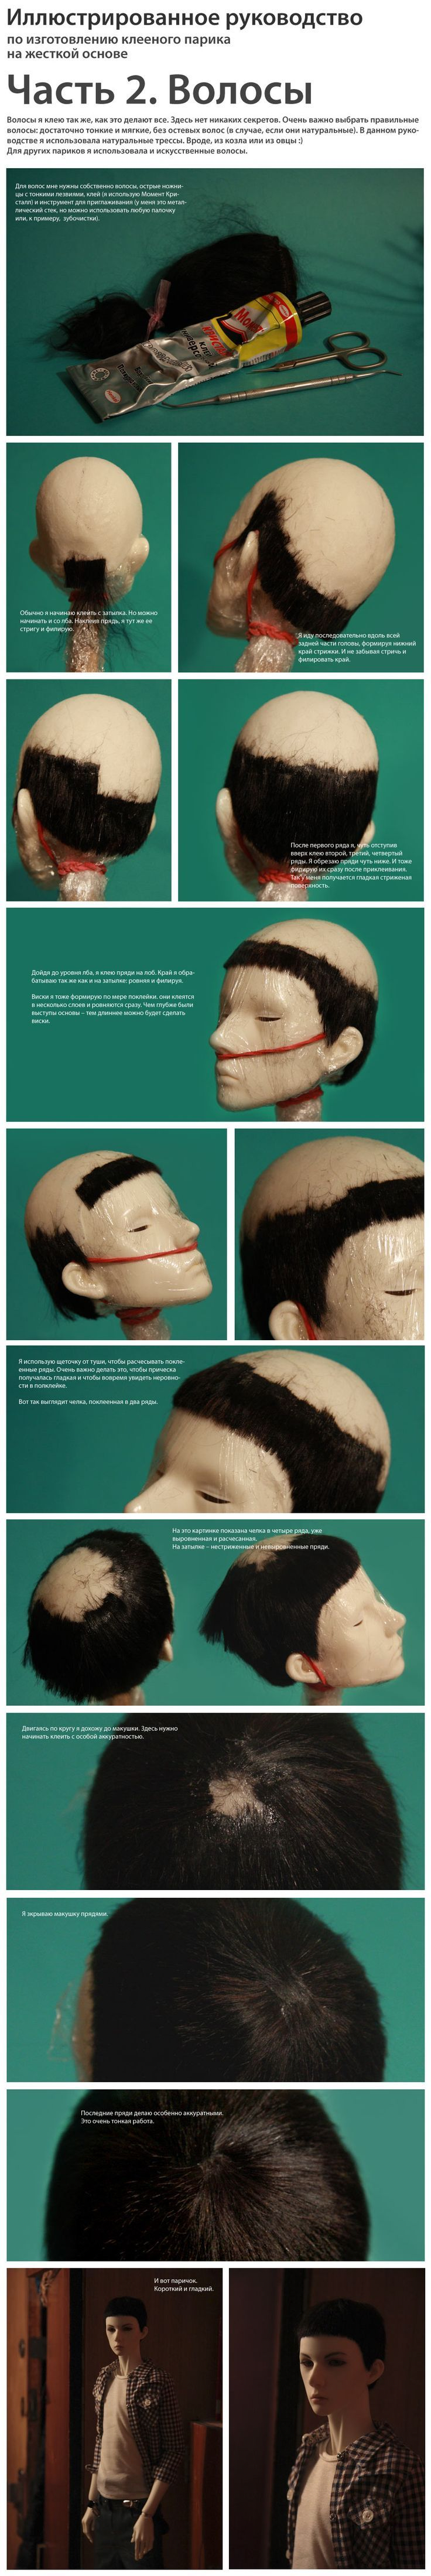 Pin by Claire de Lune on Doll making | Pinterest